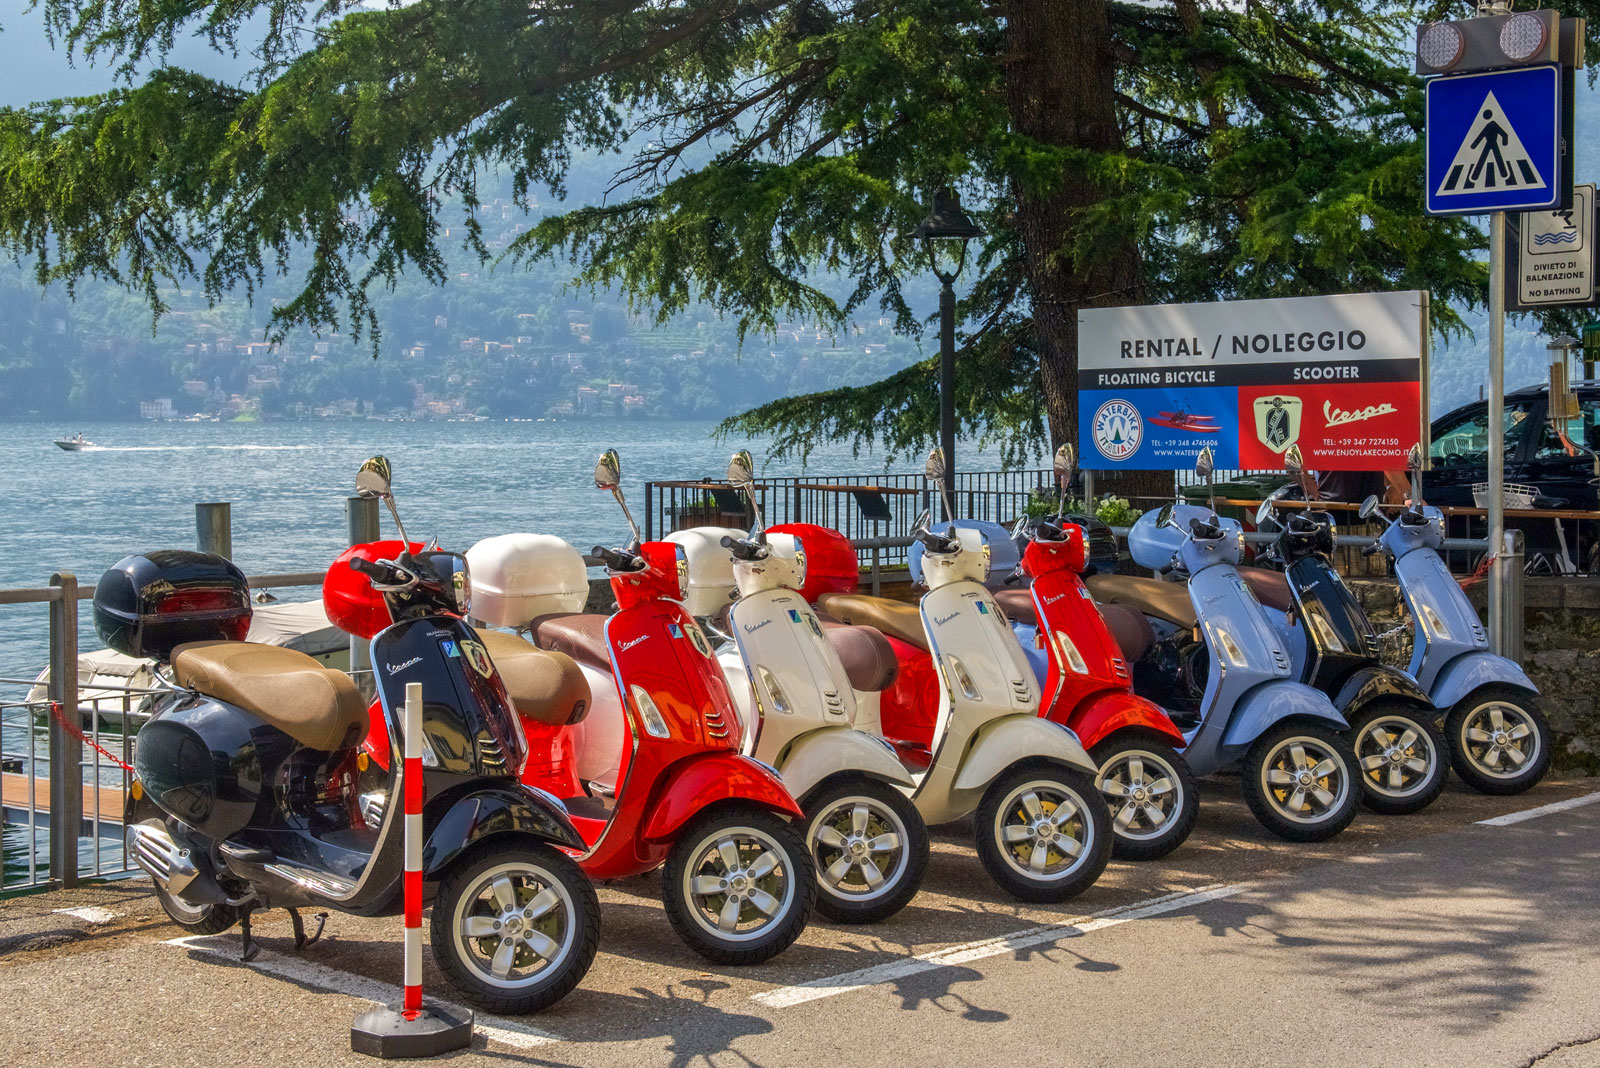 Vespa, Comomeer, huren, Laglio, Enjoy Lake Como, rental